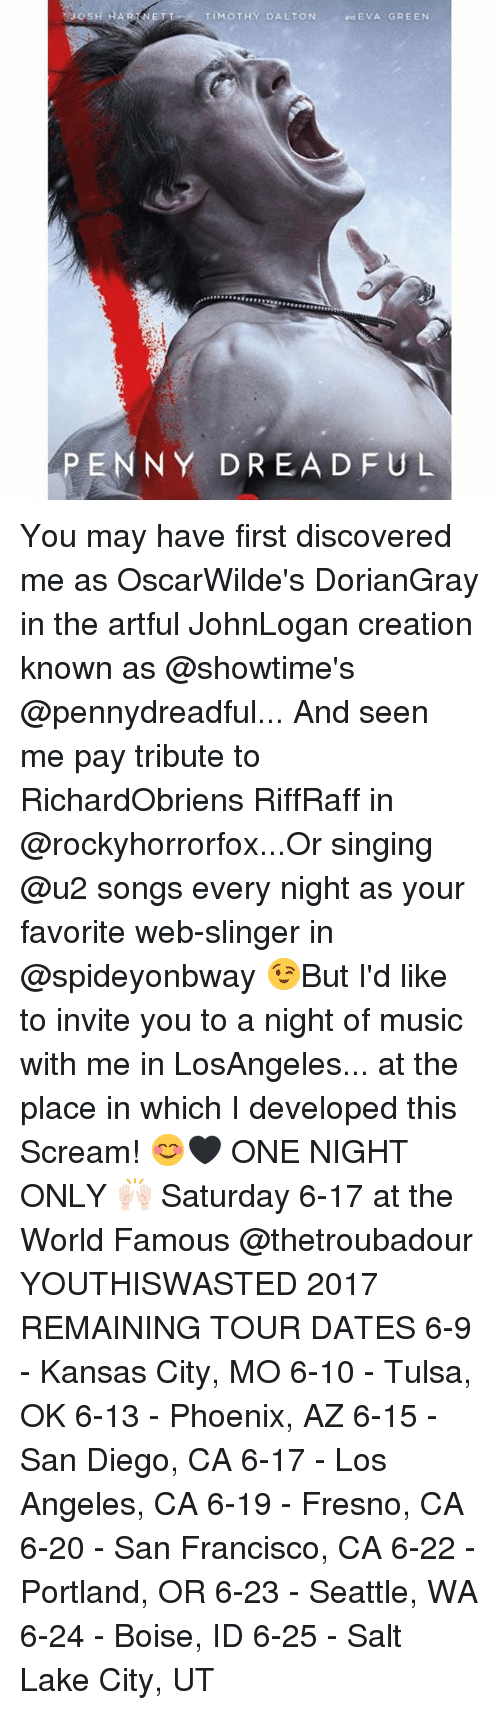 Memes, Music, and Scream: TIMOTHY DALTON  and EVA GREEN  JOSH HARA NE  PENNY DREADFUL You may have first discovered me as OscarWilde's DorianGray in the artful JohnLogan creation known as @showtime's @pennydreadful... And seen me pay tribute to RichardObriens RiffRaff in @rockyhorrorfox...Or singing @u2 songs every night as your favorite web-slinger in @spideyonbway 😉But I'd like to invite you to a night of music with me in LosAngeles... at the place in which I developed this Scream! 😊🖤 ONE NIGHT ONLY 🙌🏻 Saturday 6-17 at the World Famous @thetroubadour YOUTHISWASTED 2017 REMAINING TOUR DATES 6-9 - Kansas City, MO 6-10 - Tulsa, OK 6-13 - Phoenix, AZ 6-15 - San Diego, CA 6-17 - Los Angeles, CA 6-19 - Fresno, CA 6-20 - San Francisco, CA 6-22 - Portland, OR 6-23 - Seattle, WA 6-24 - Boise, ID 6-25 - Salt Lake City, UT